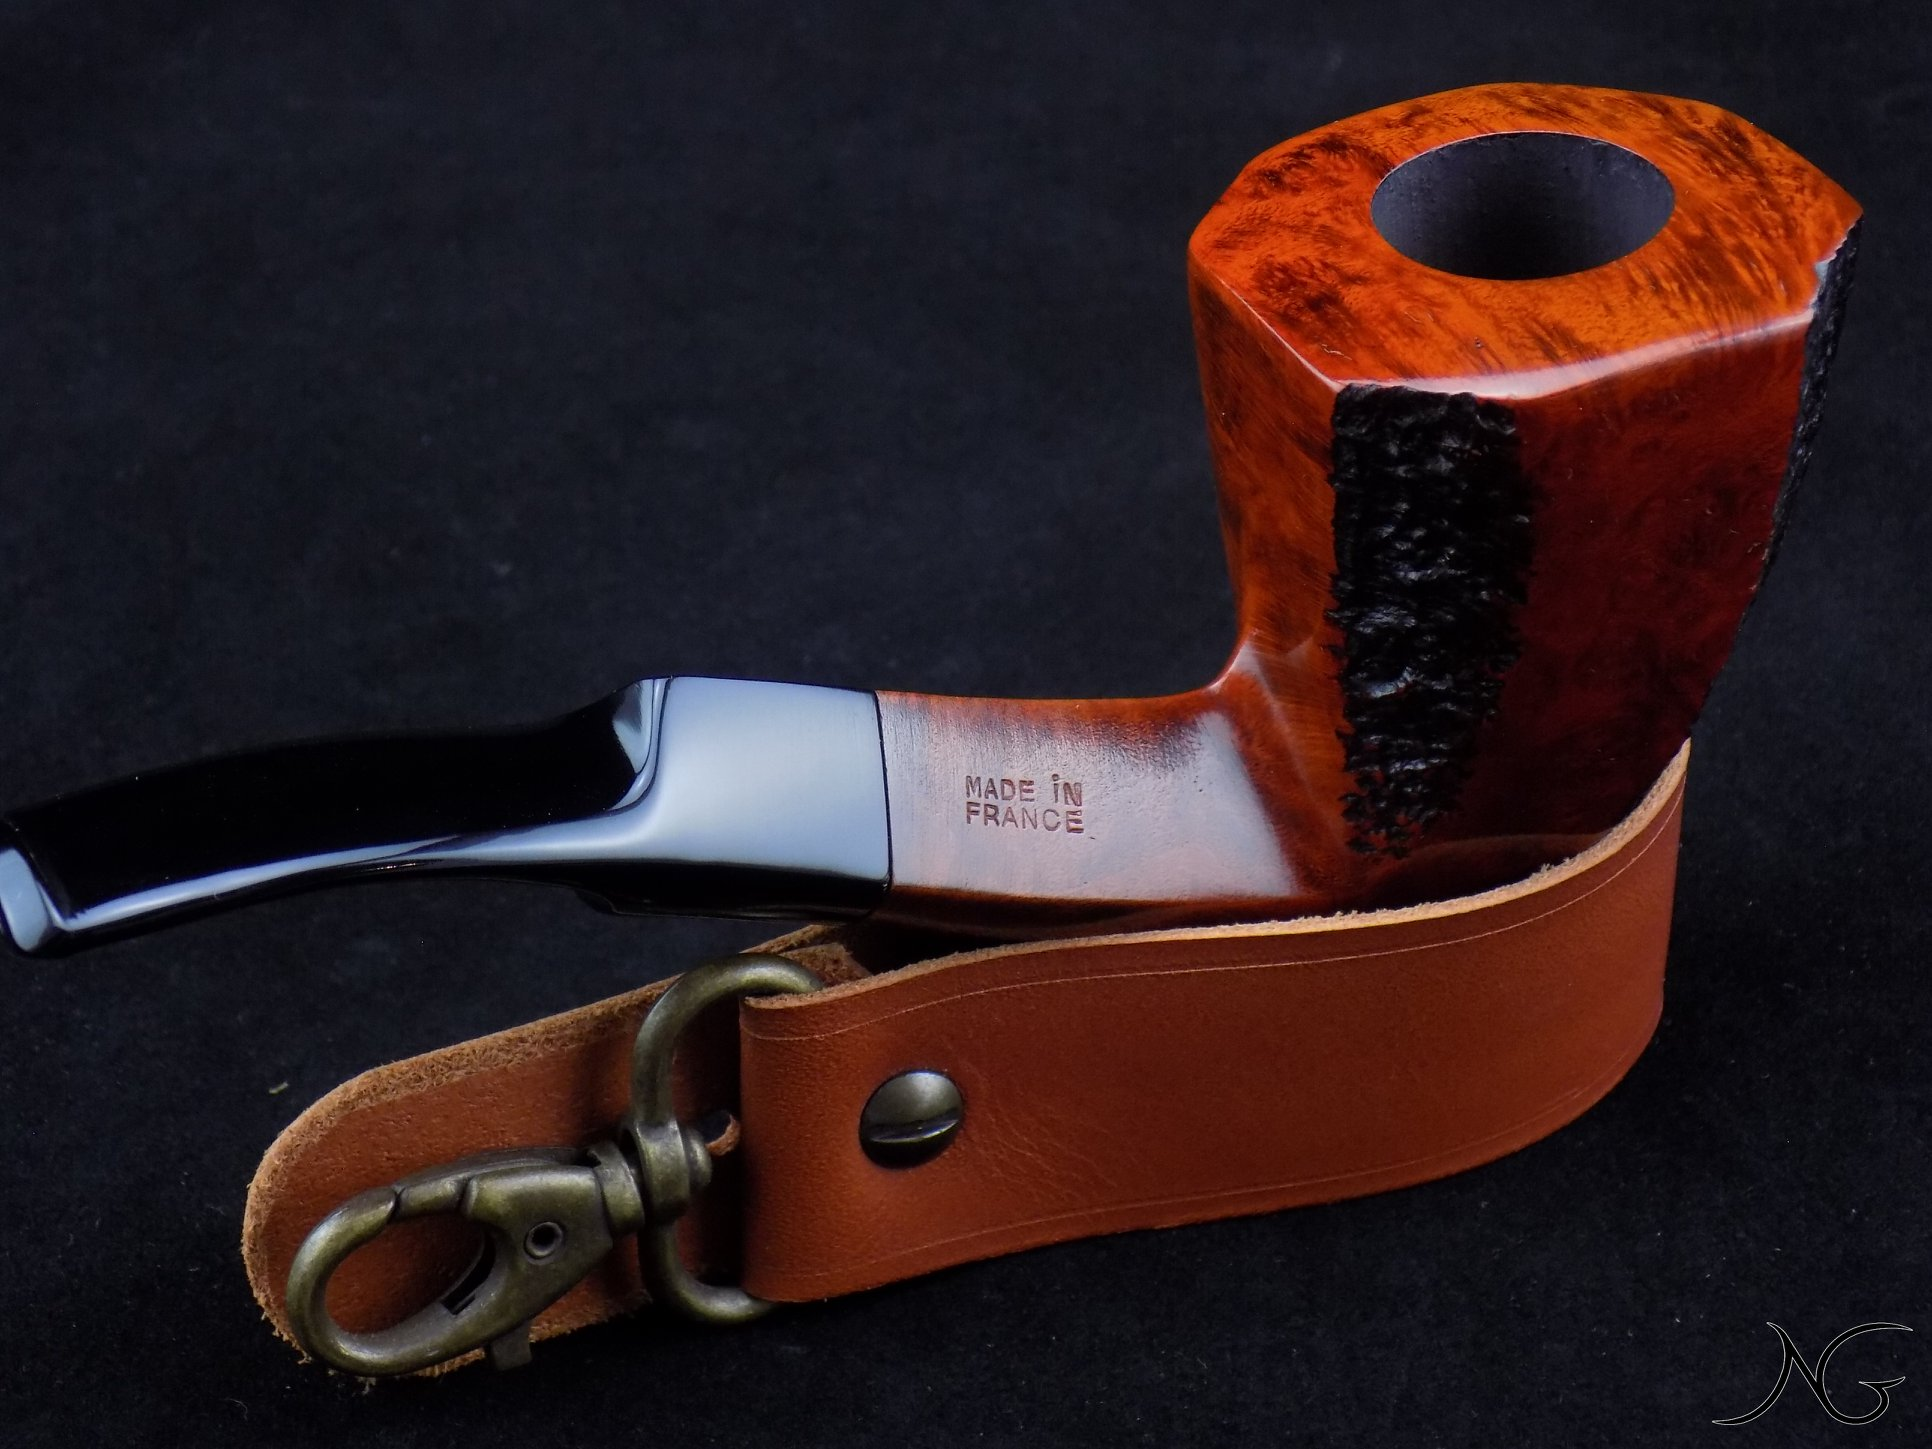 https://www.ngpipes.com/wp-content/uploads/2019/08/67771398_936779260007039_4634490379213733888_o.jpg